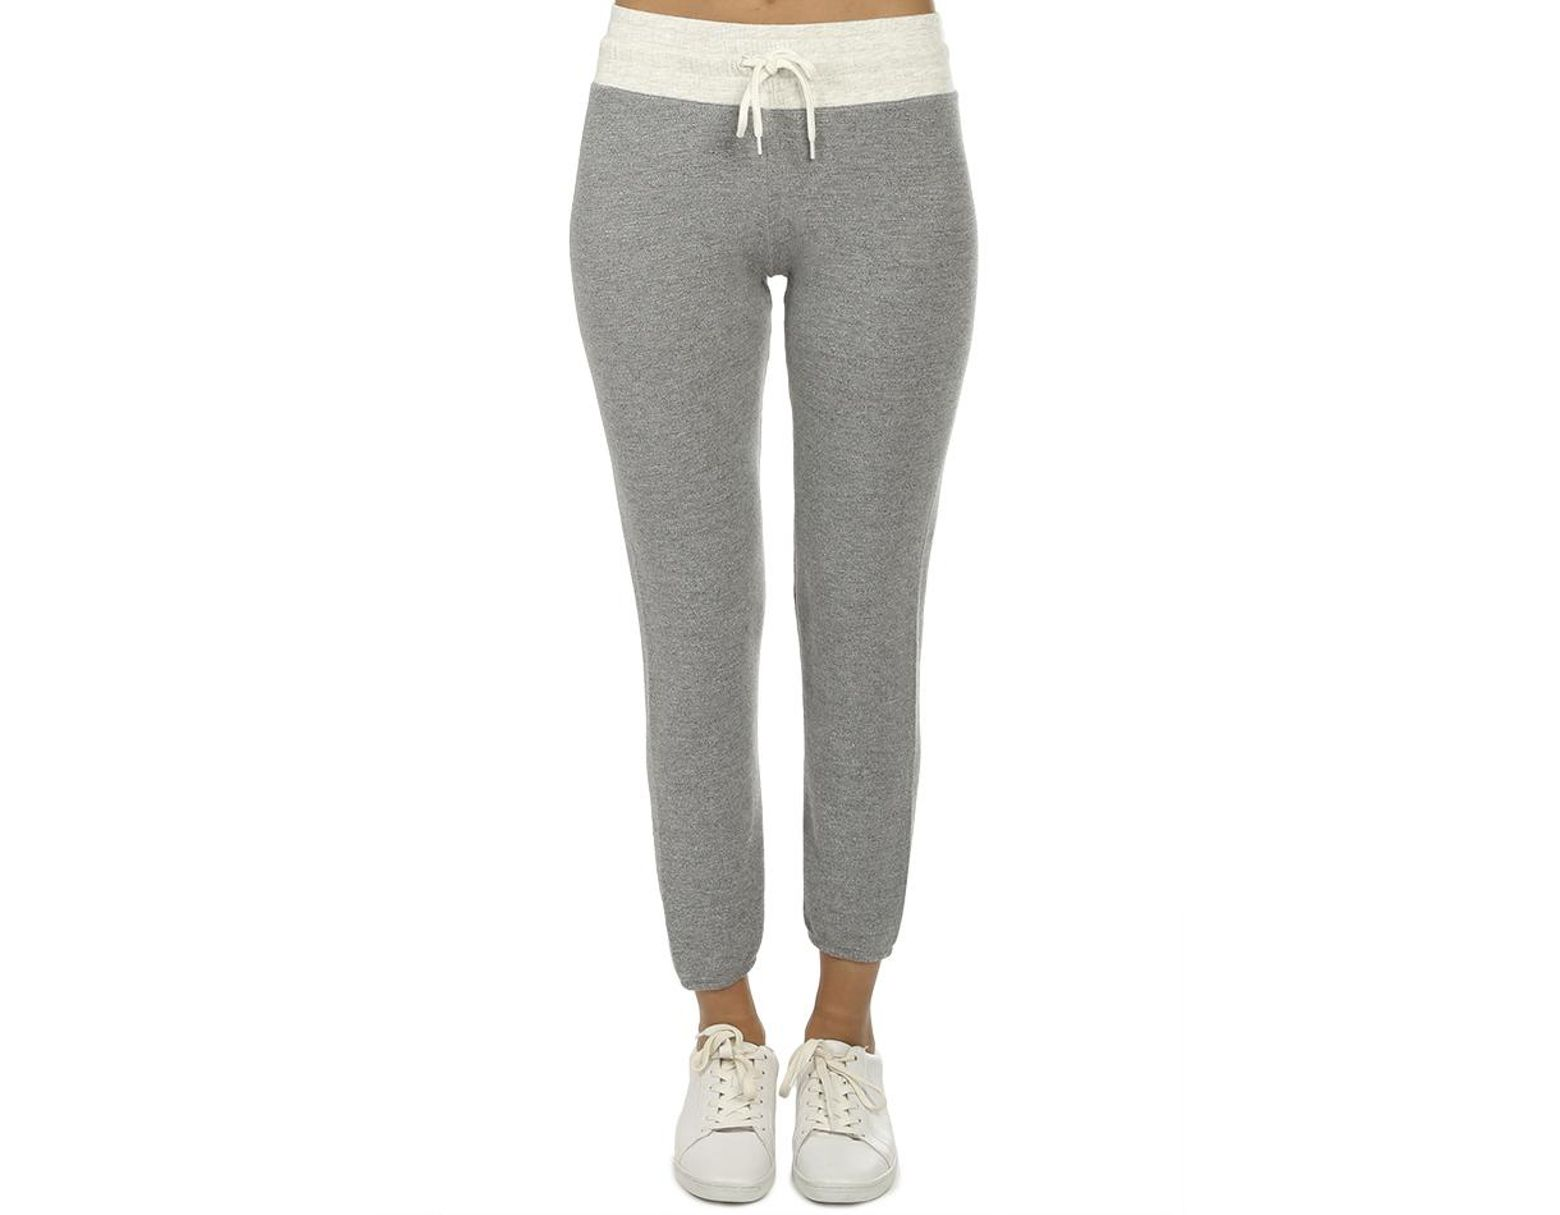 f14f4896ea Monrow Two Tone Vintage Sweatpants Ash/heather in Gray - Lyst